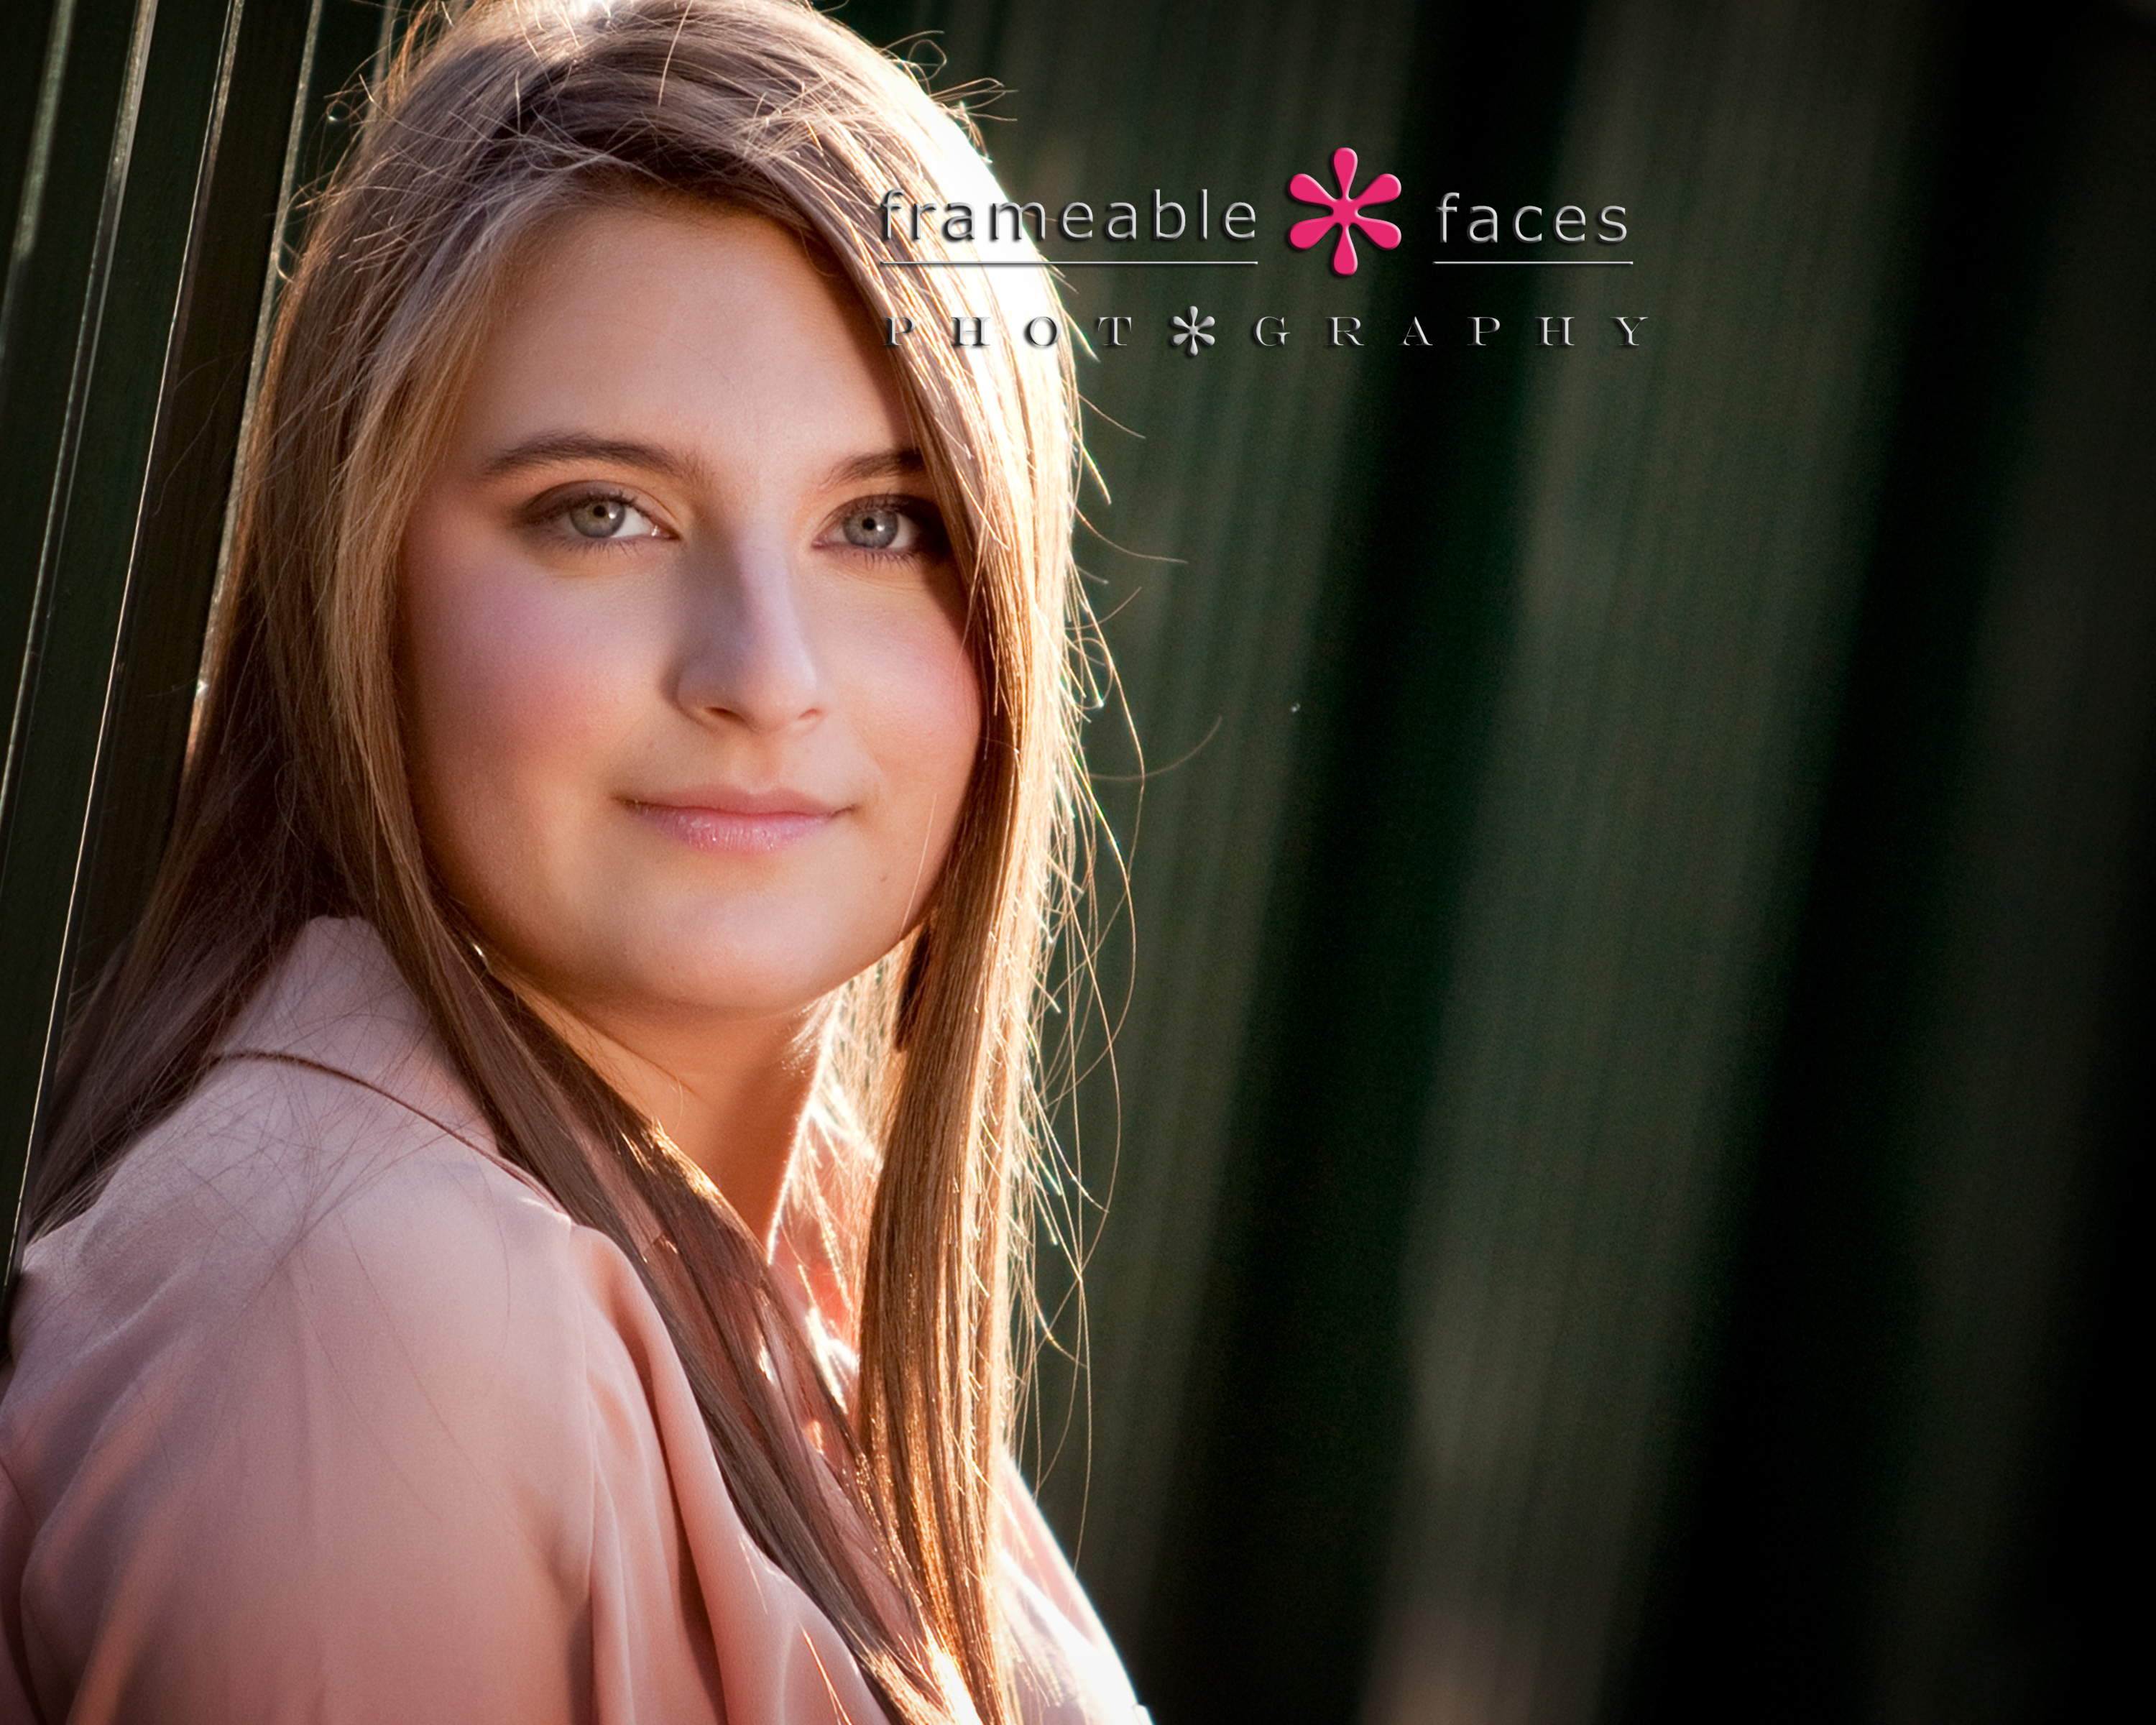 West Bloomfield Photographer, Frameable Faces Photography, Senior Pictures